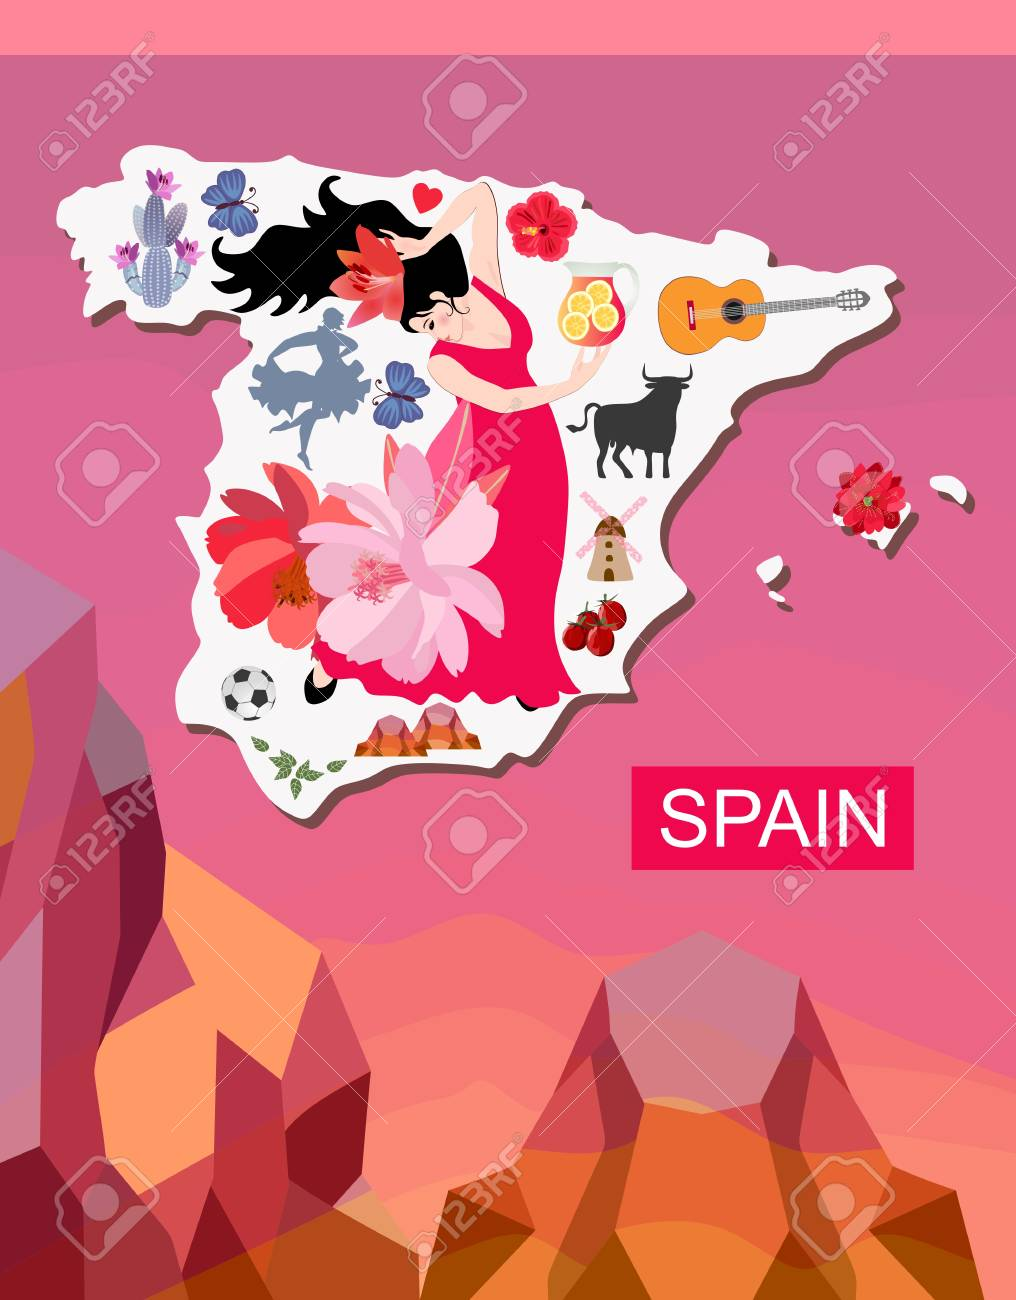 Map Of Spain Mountains.Map Of Spain With Spanish Symbols On Mountains Background Book